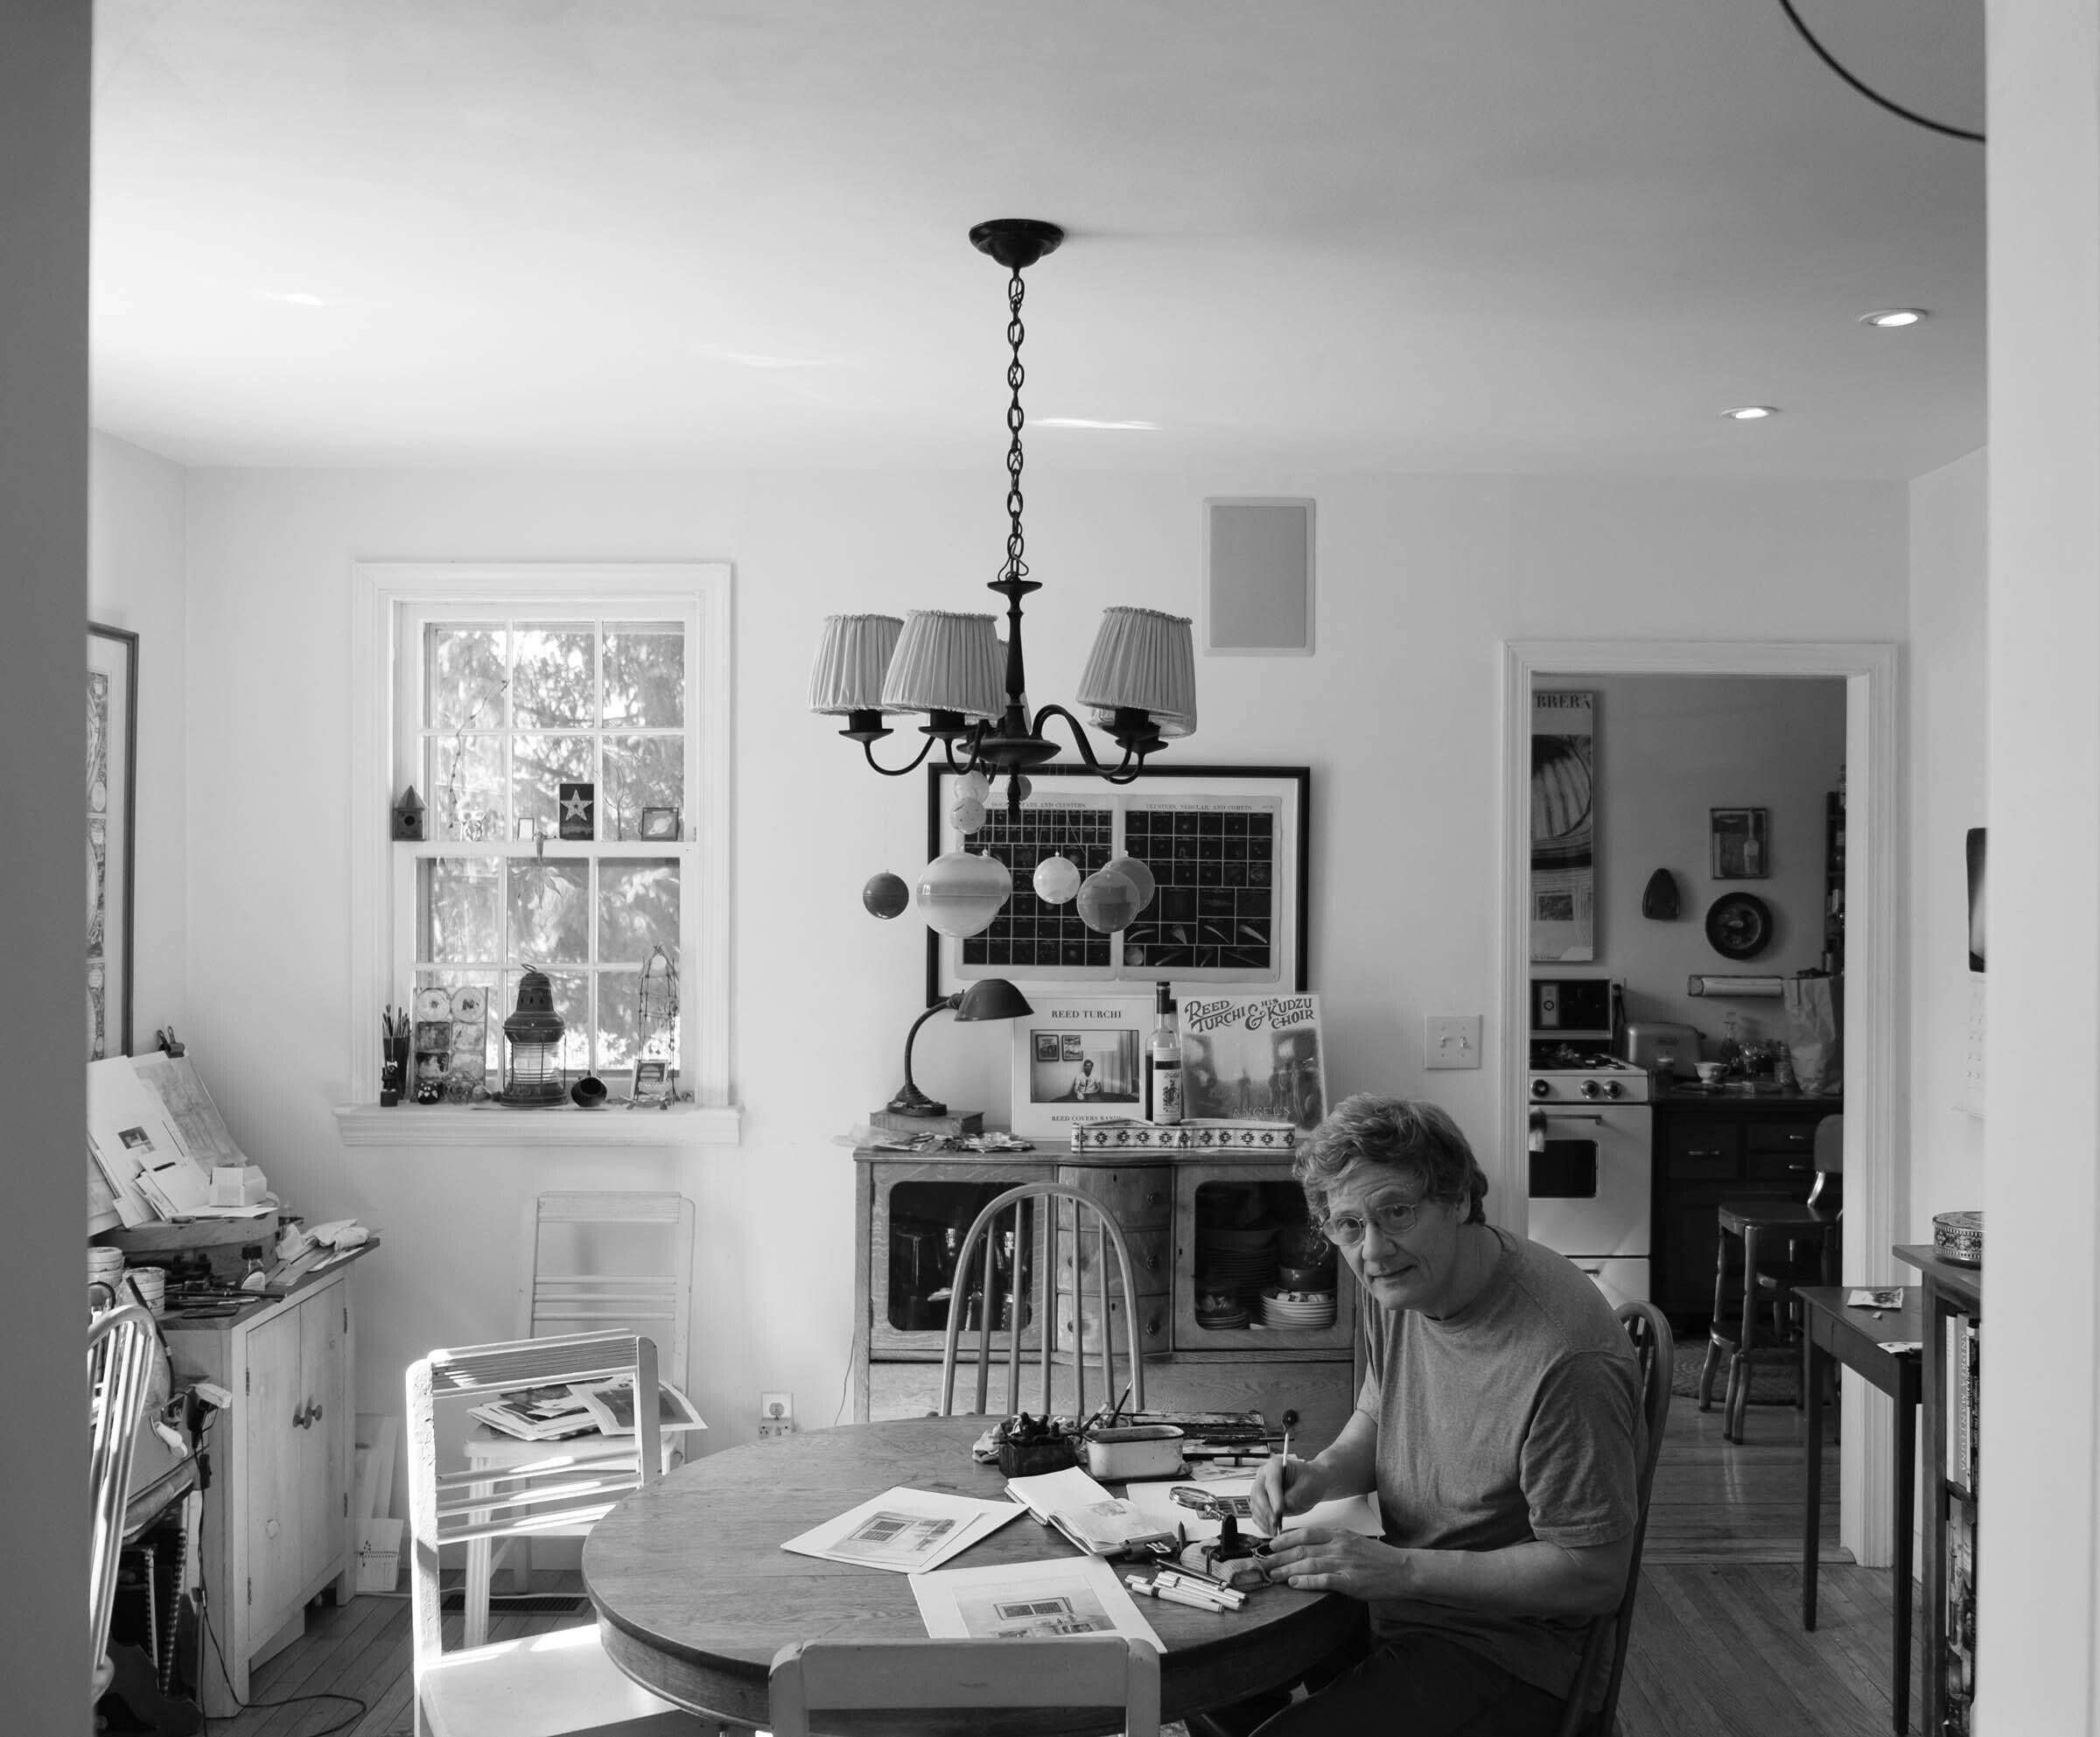 Photograph of the artist in his studio, March 2020. See Instagram Artist Feature @Jason Haam. image